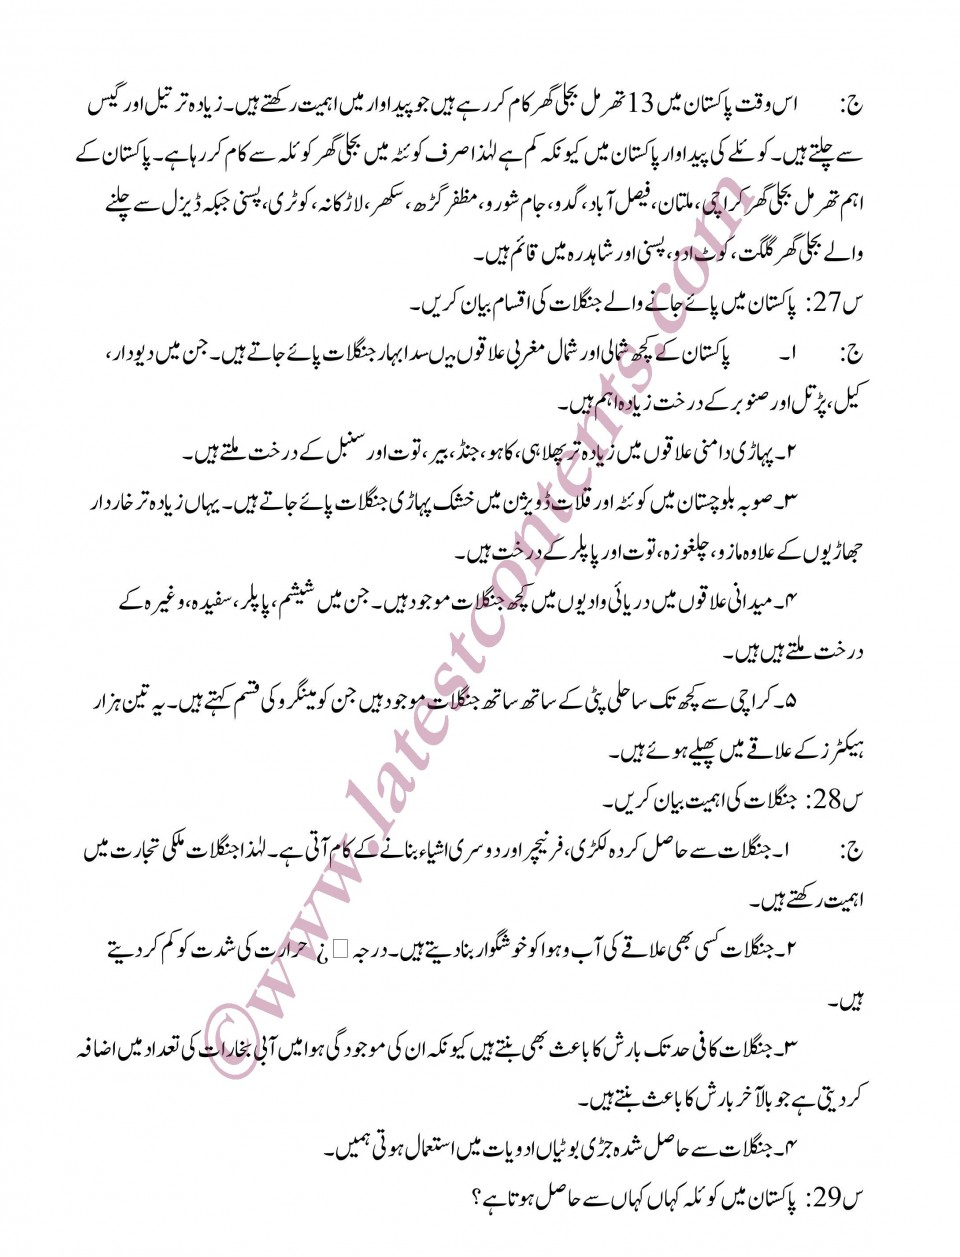 015 Issues To Write An Essay About Persuasive Social Media Essays On Topics Easiest Topic Pak Studies Short Questions Notes In Ur Funny Good Argumentative Interesting Paper Easy Awesome For High School 960